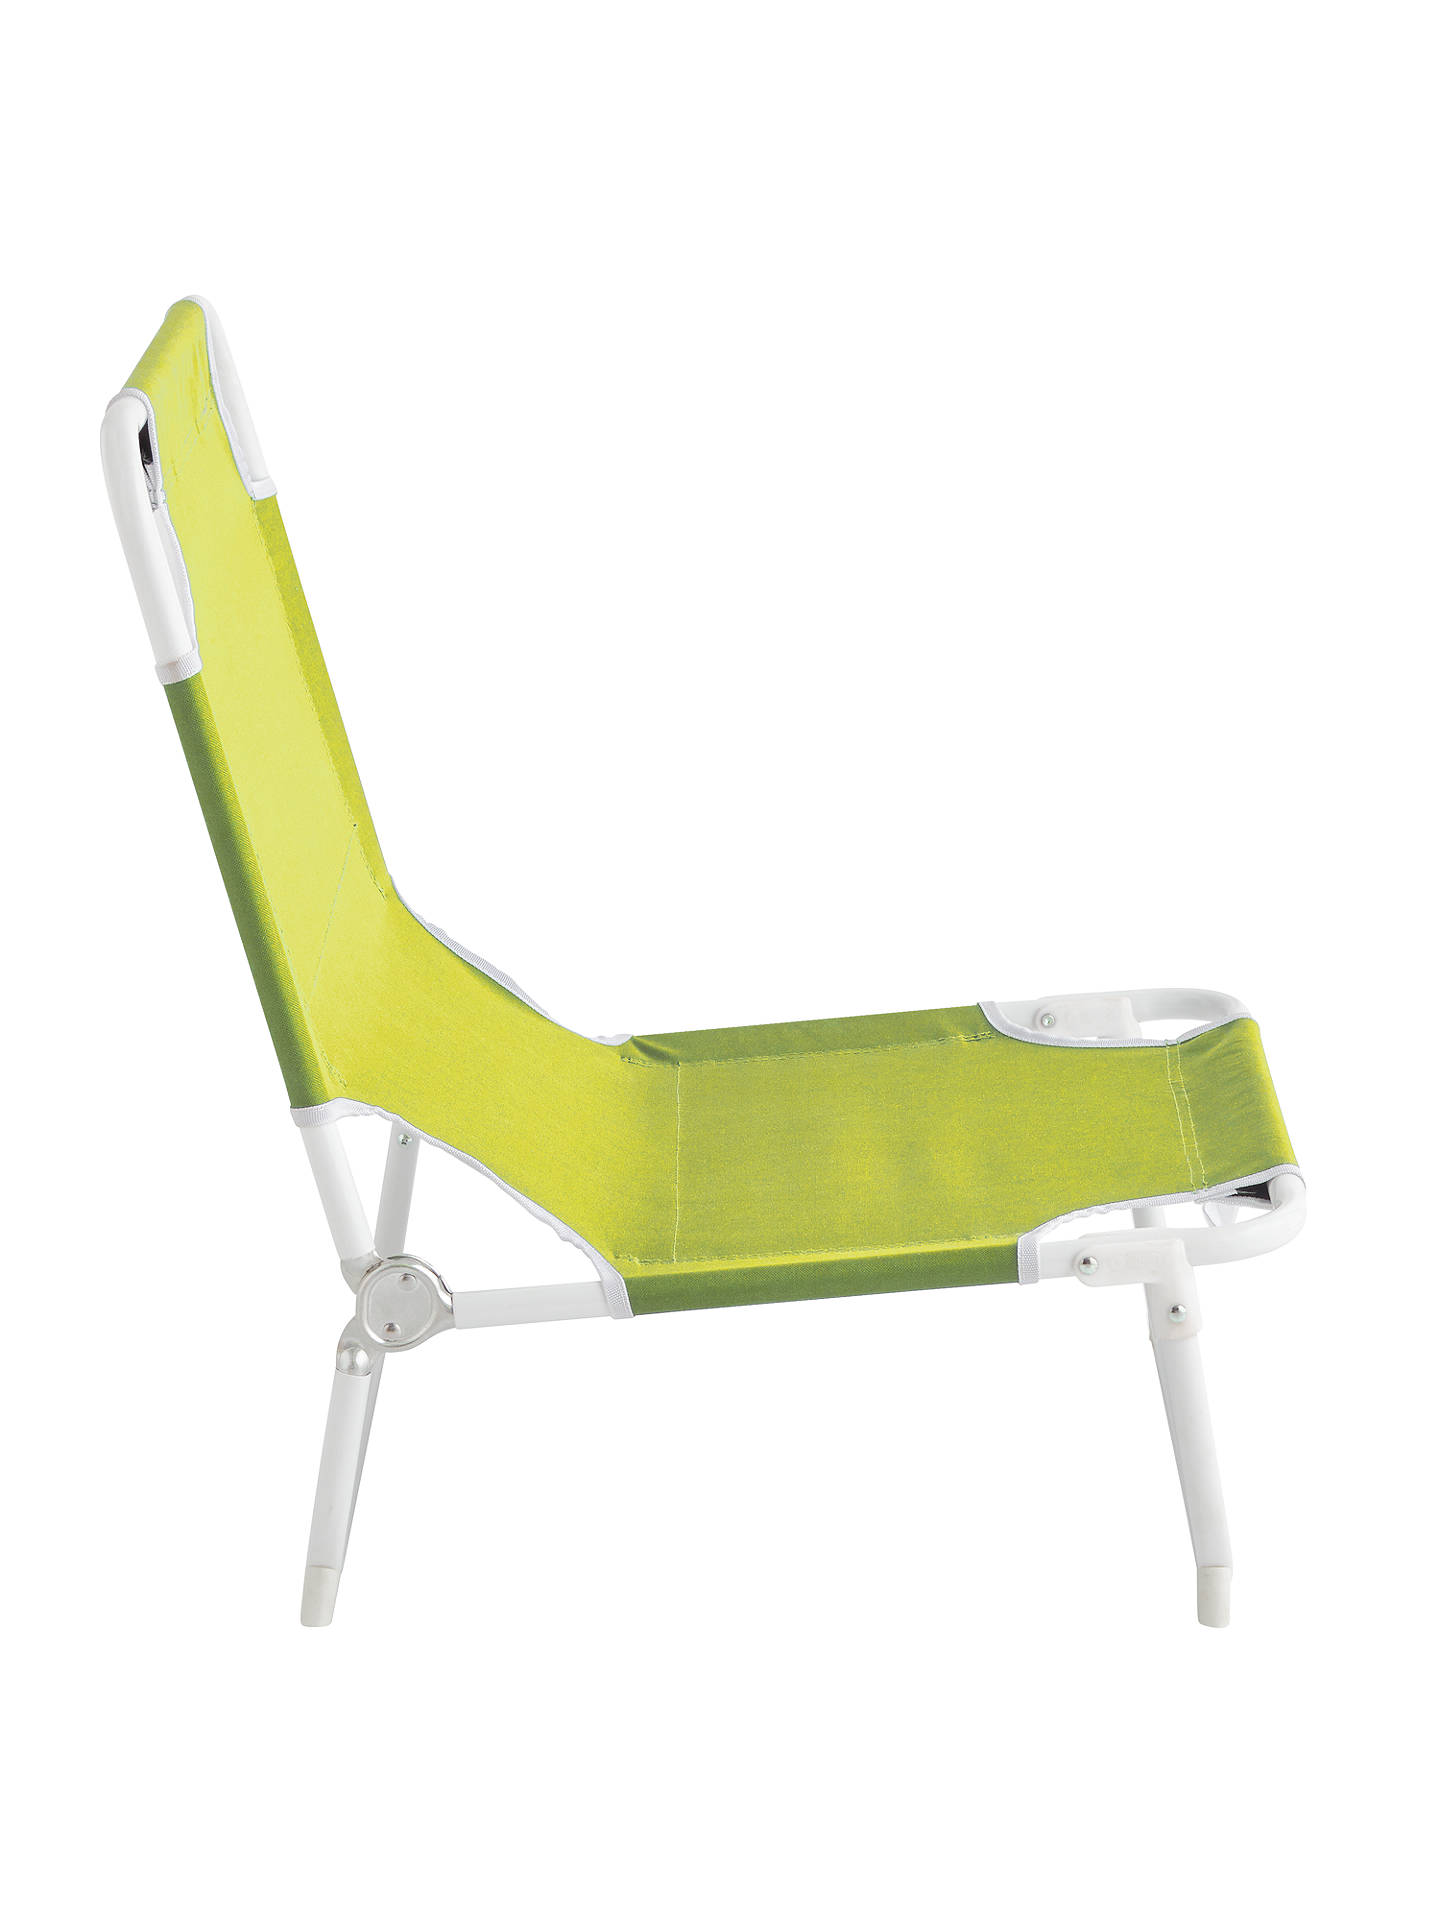 Buy House by John Lewis Beach Chair, Zest Online at johnlewis.com